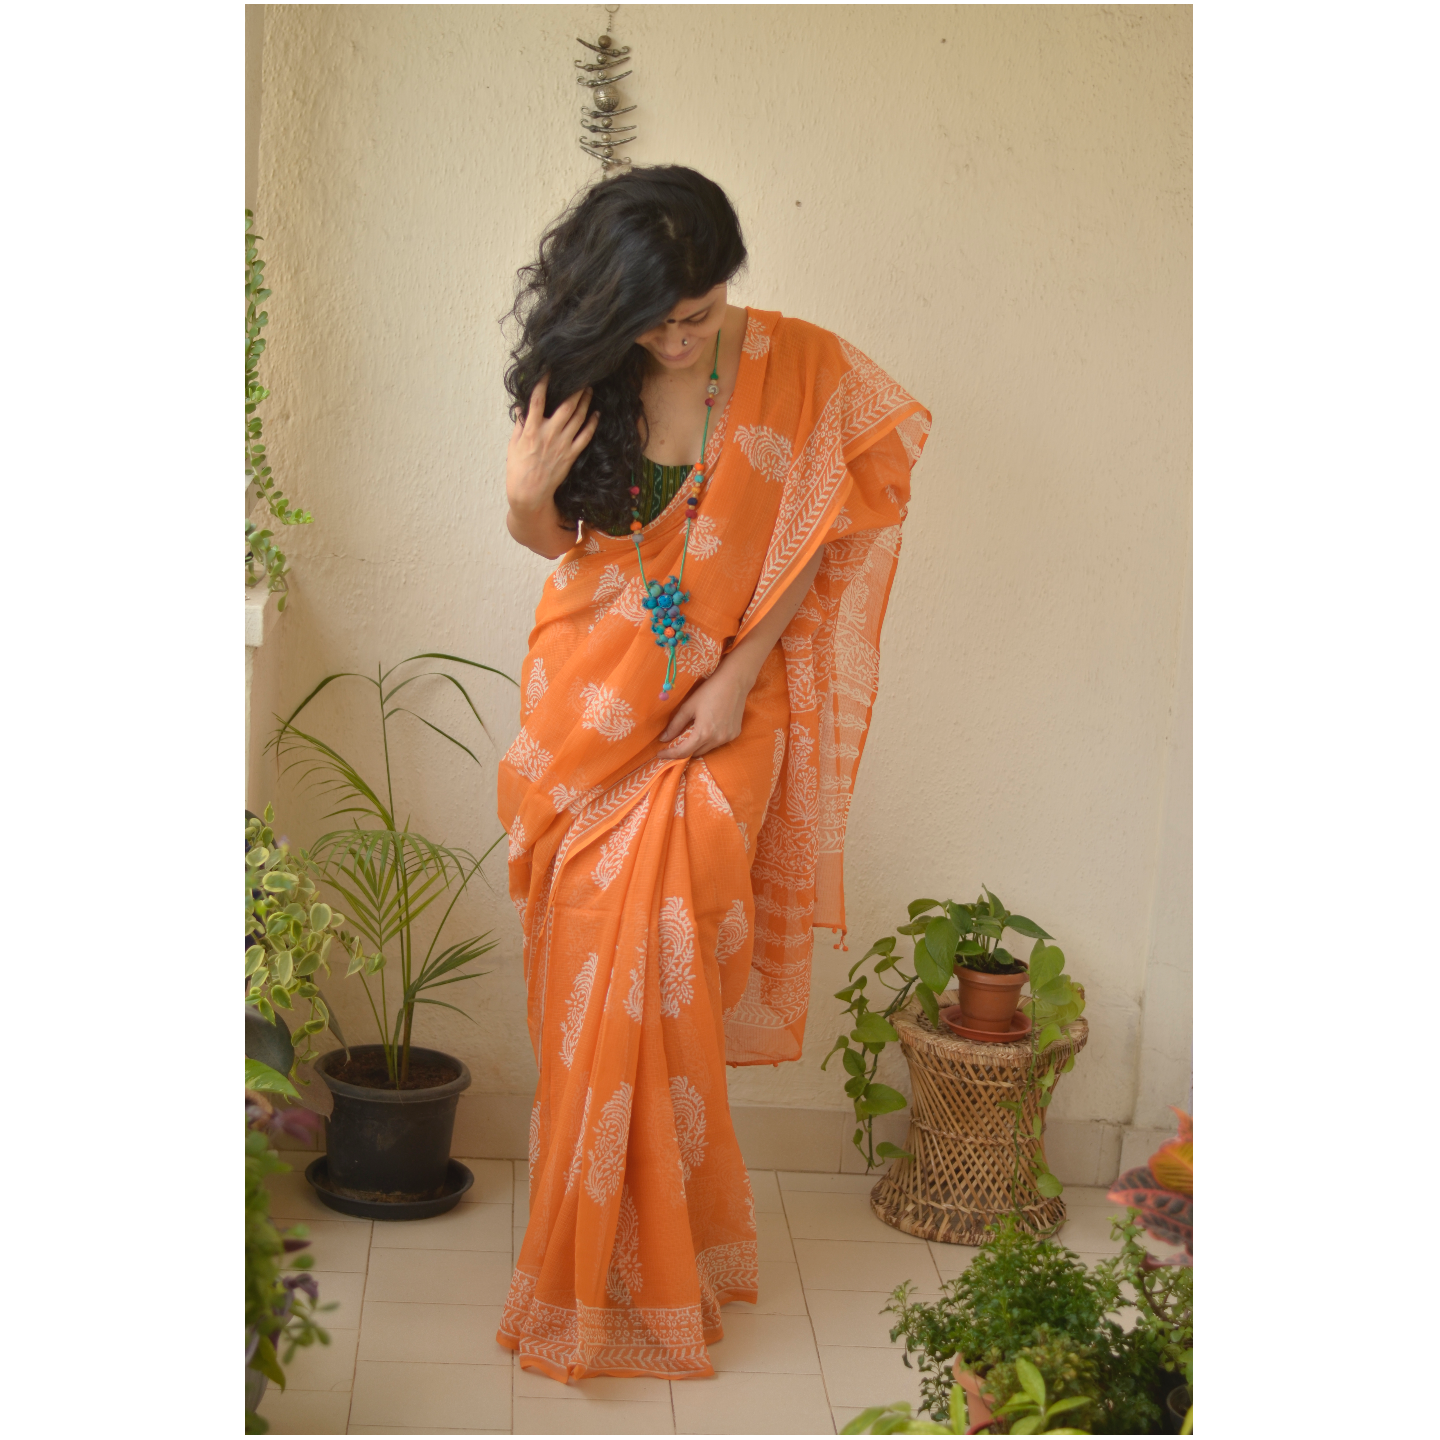 Handmade and handembroidered kota doria saree